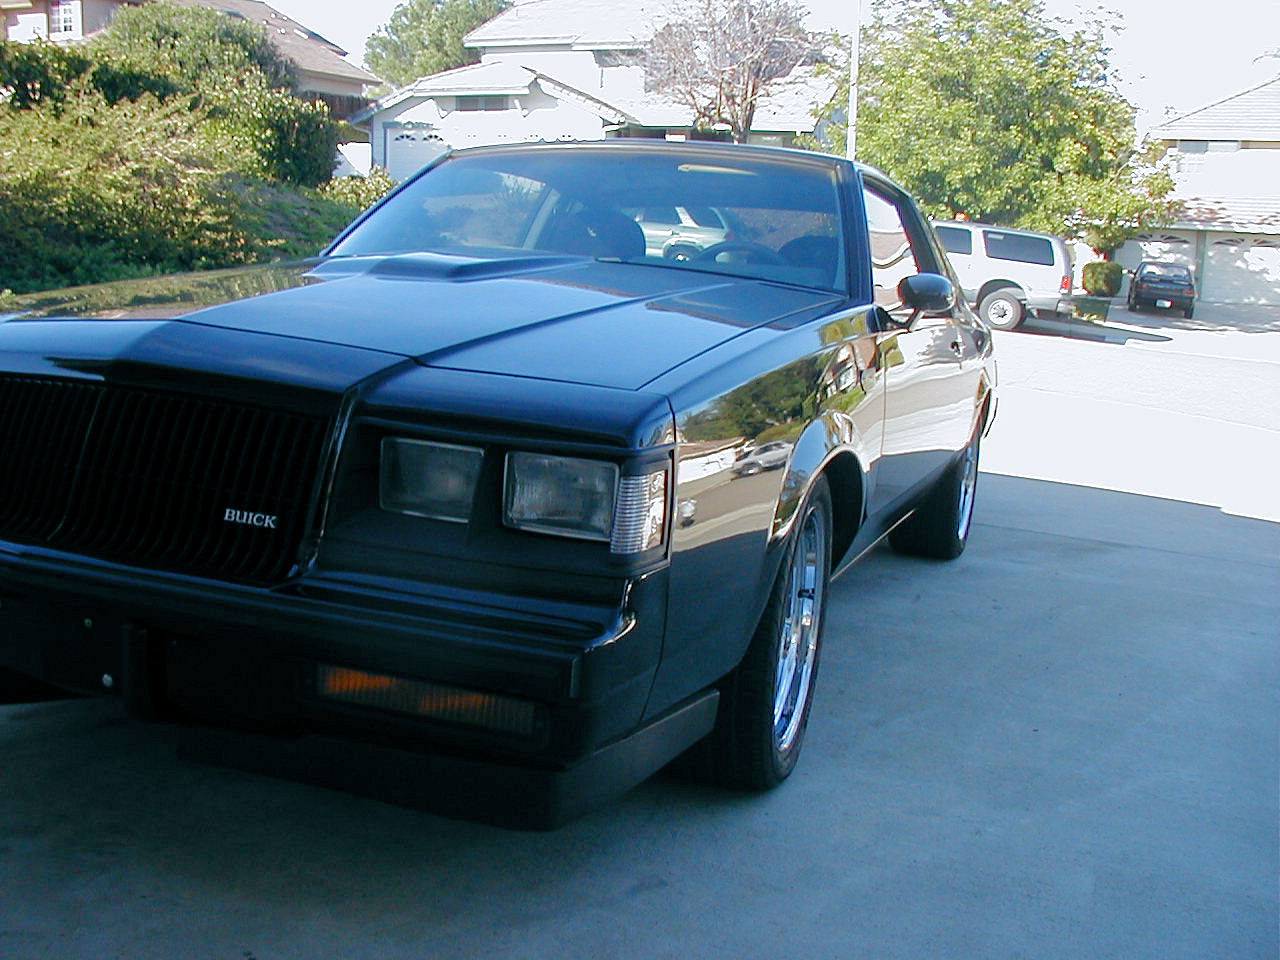 Buick Grand National Street Rod-front1.jpg